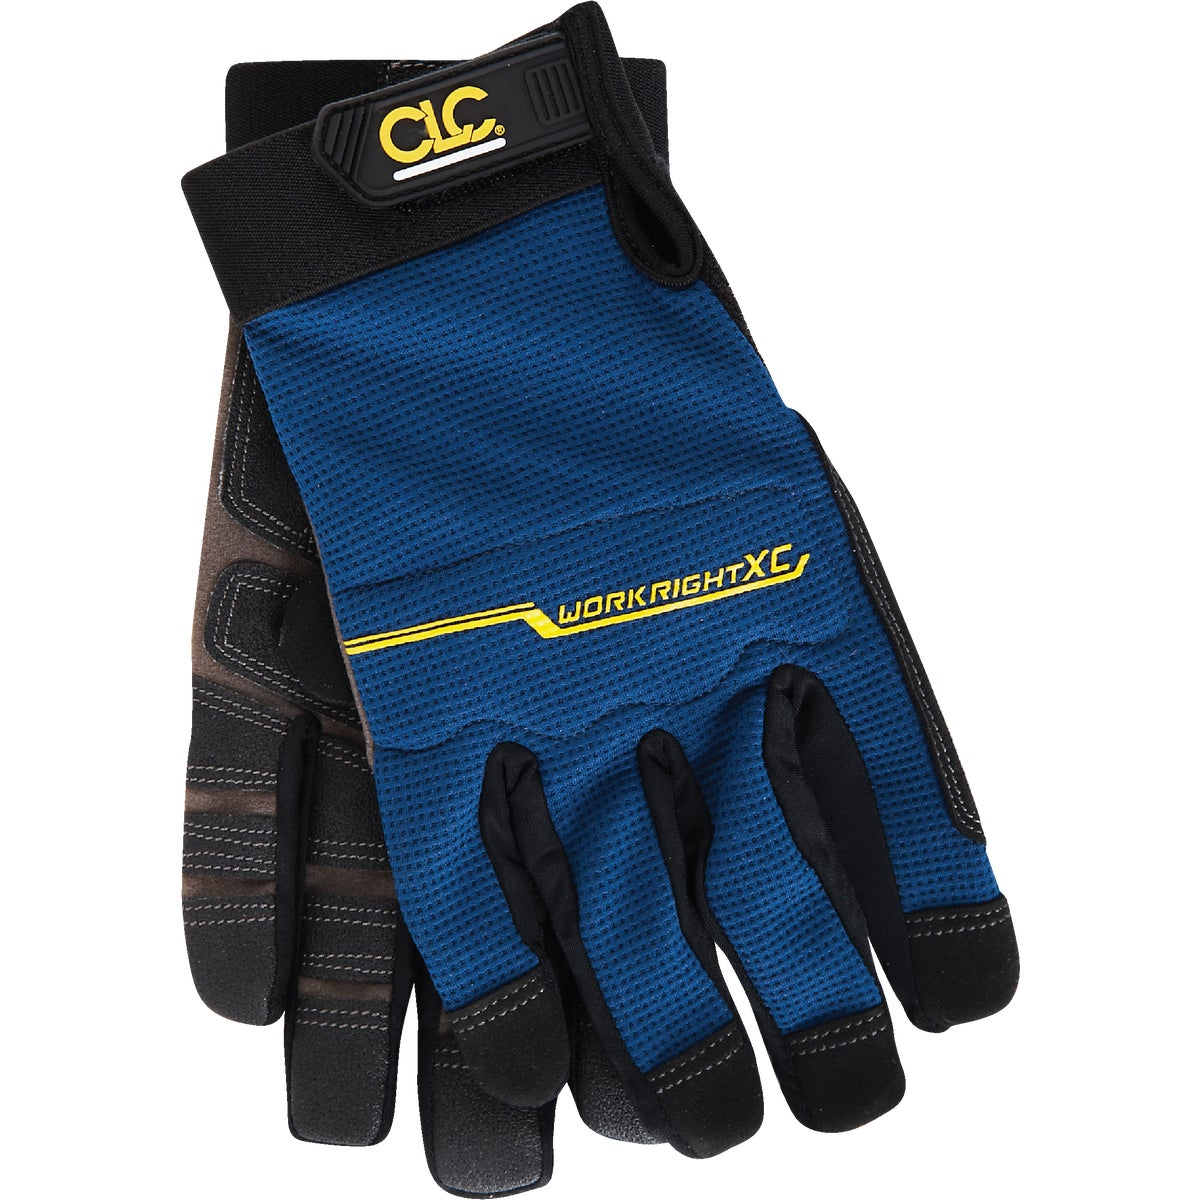 LRG WORKRIGHT XC GLOVE - 126L by Custom Leathercraft